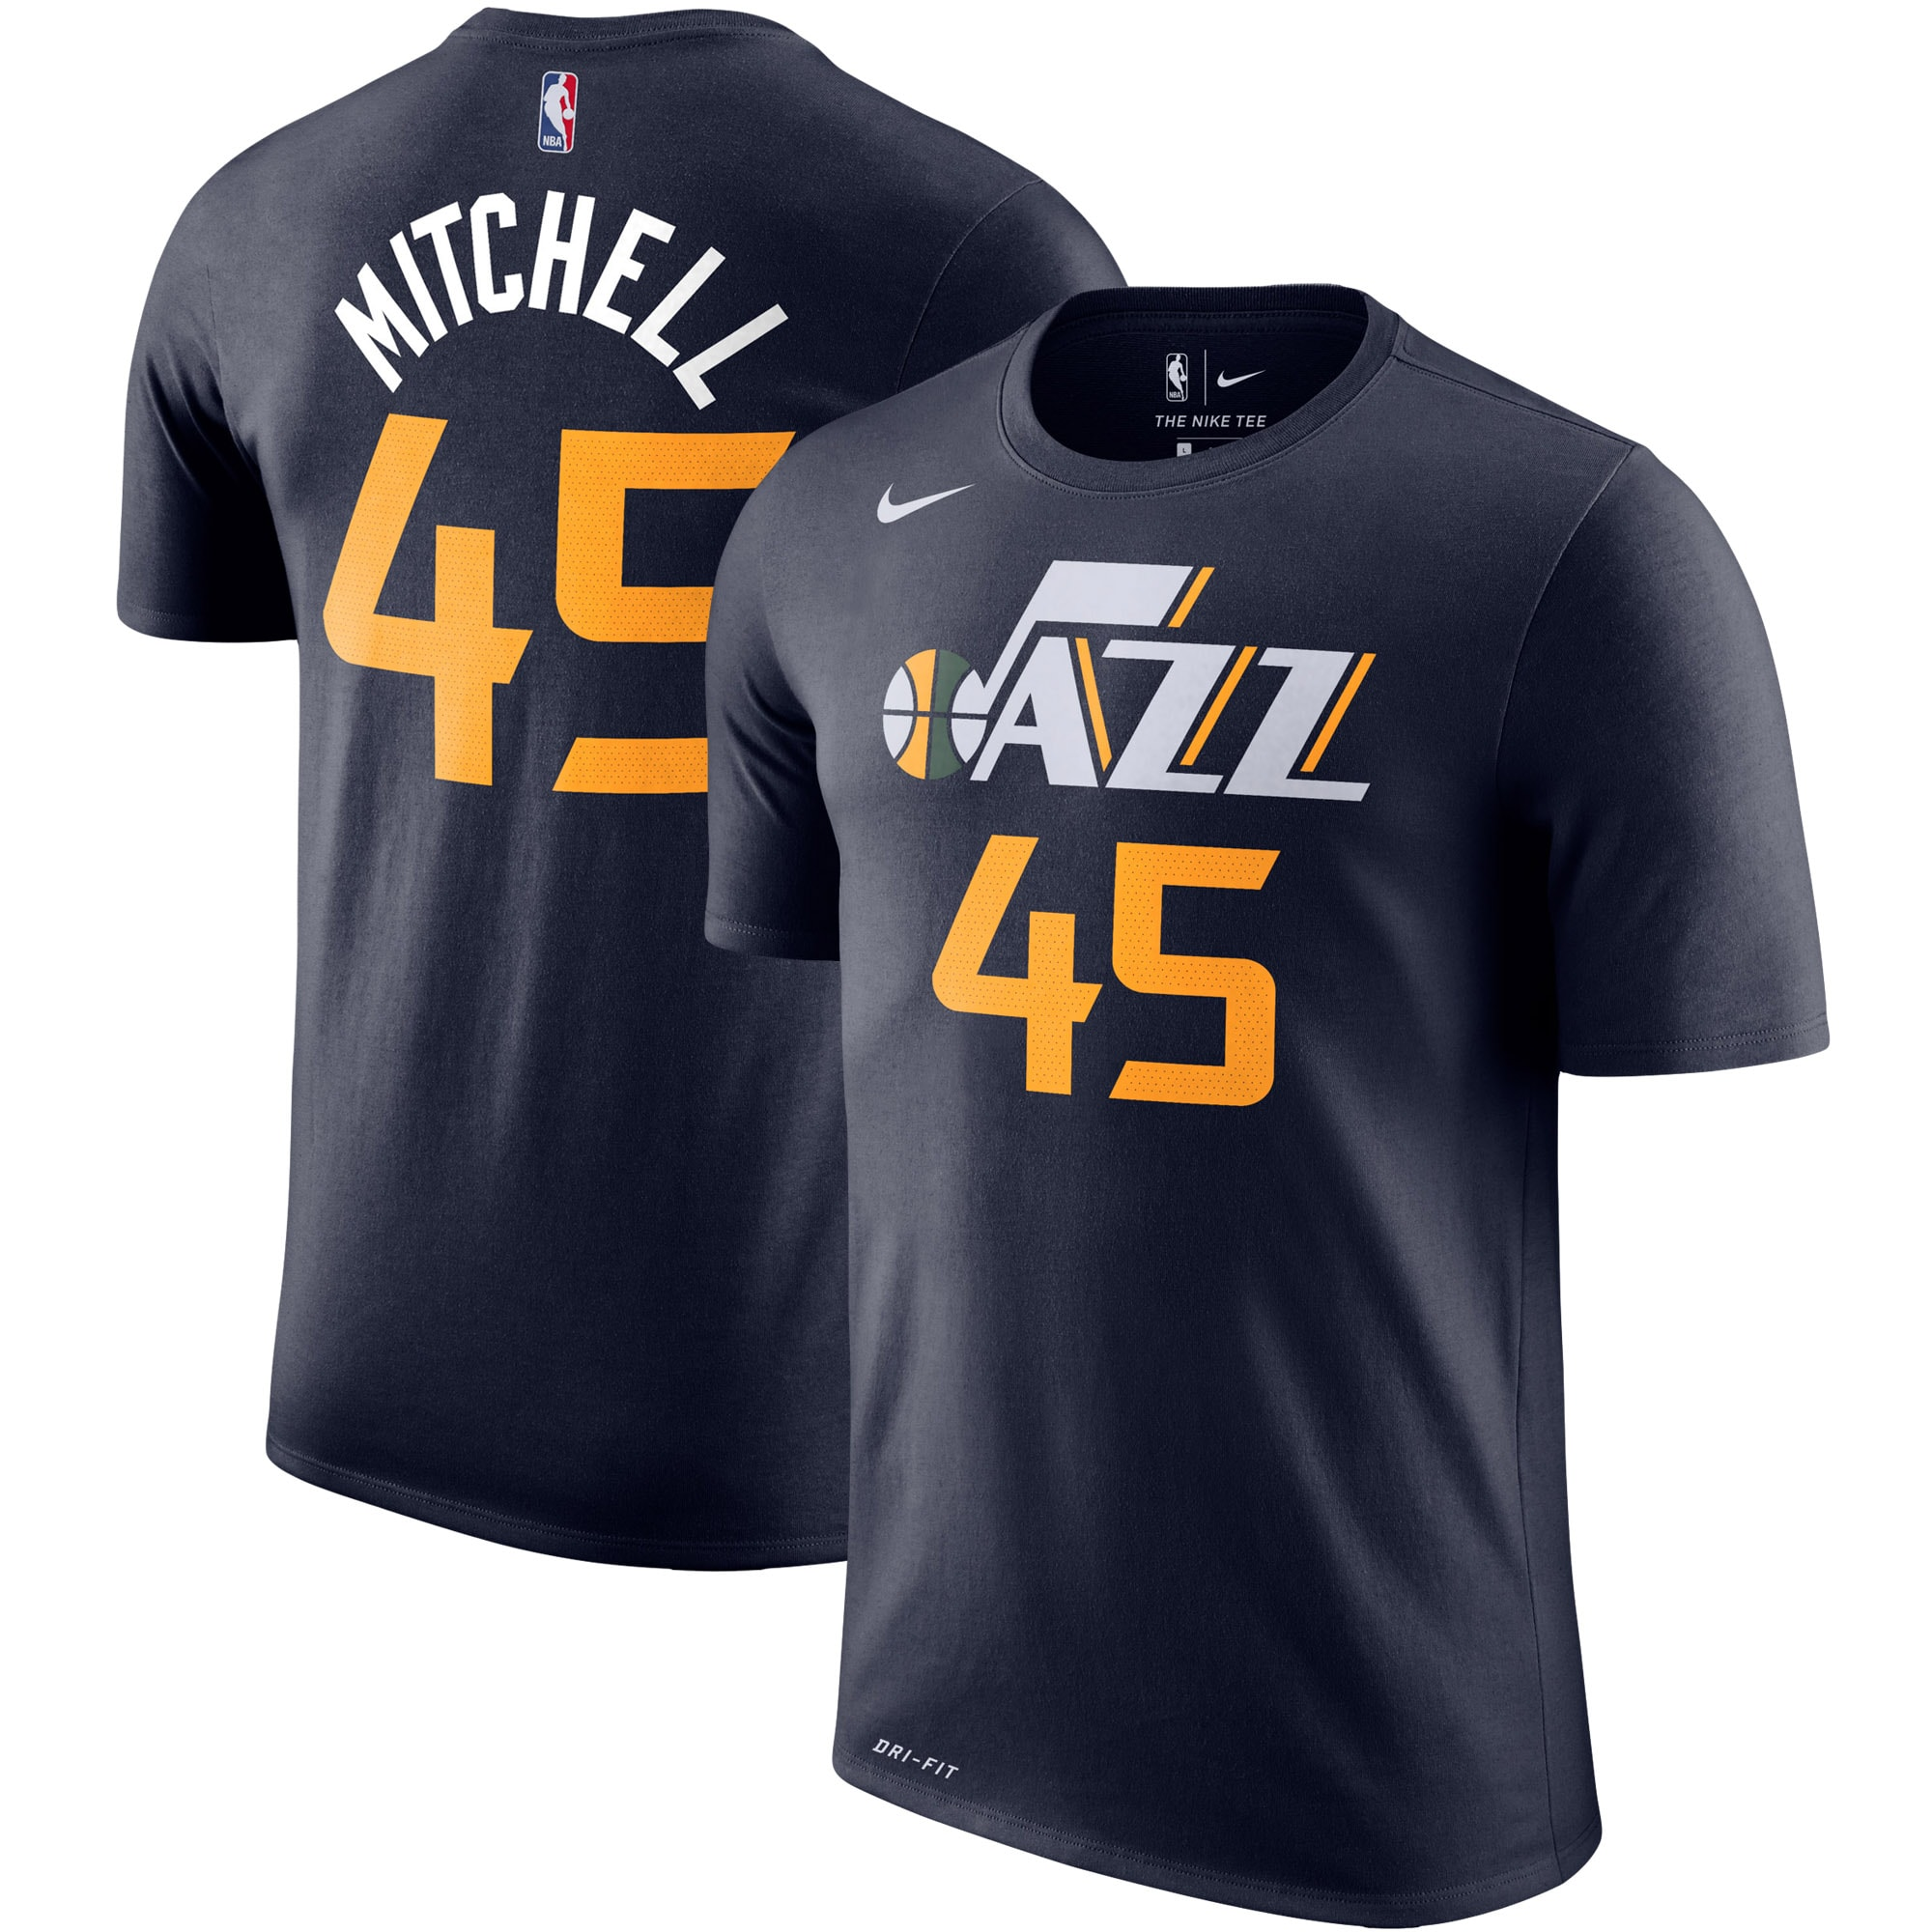 Donovan Mitchell Utah Jazz Nike Player Name & Number Performance T-Shirt - Navy